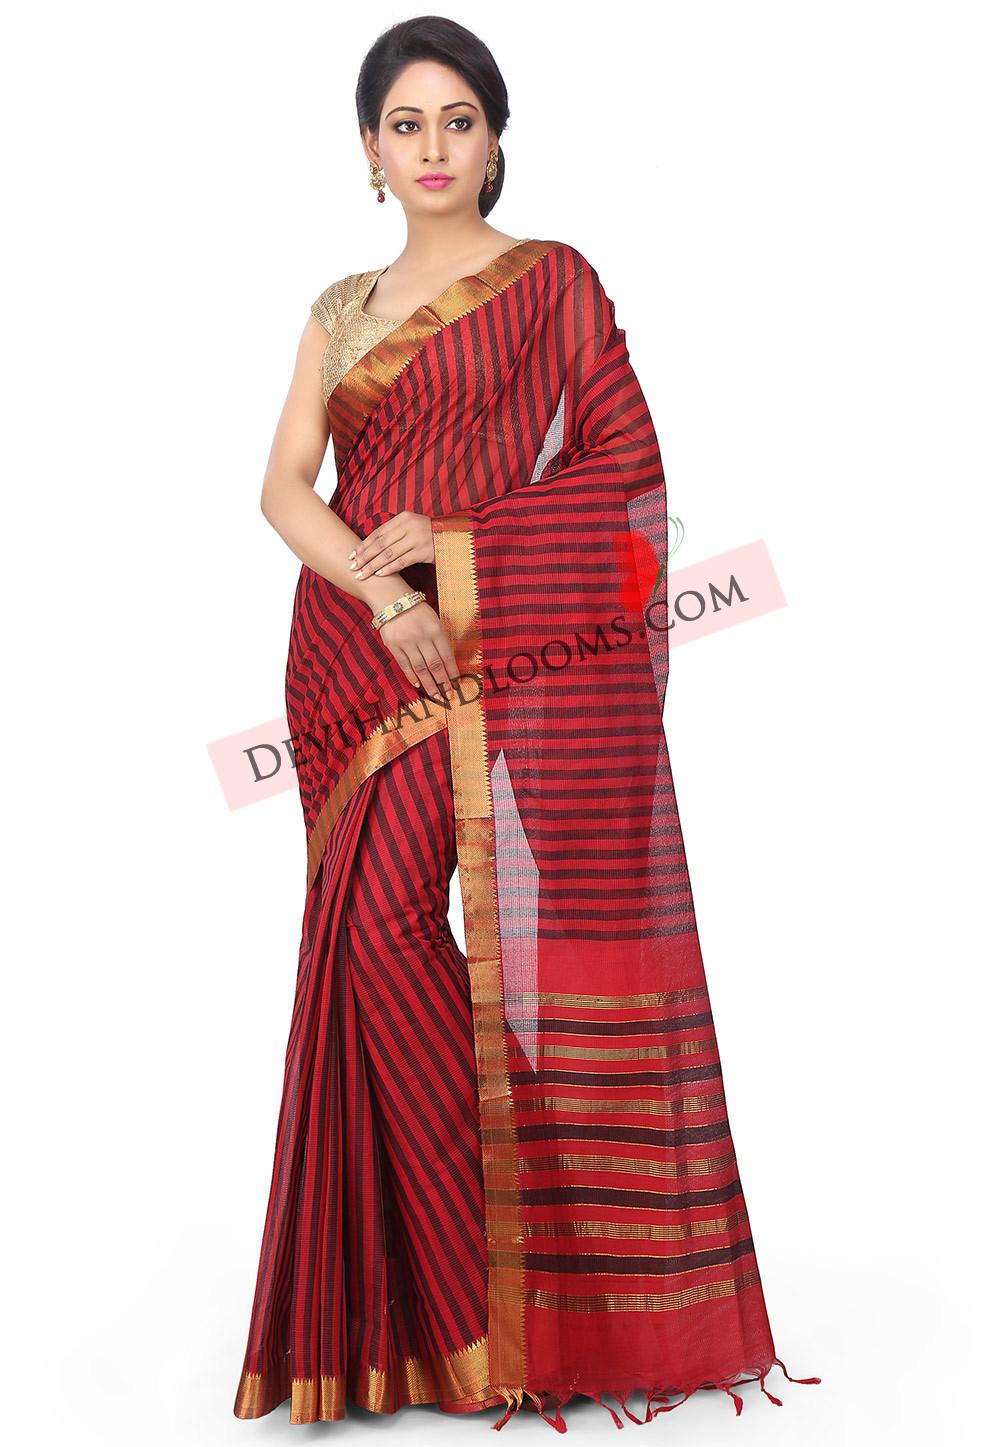 Balck with red mangalagiri handloom cotton saree full view